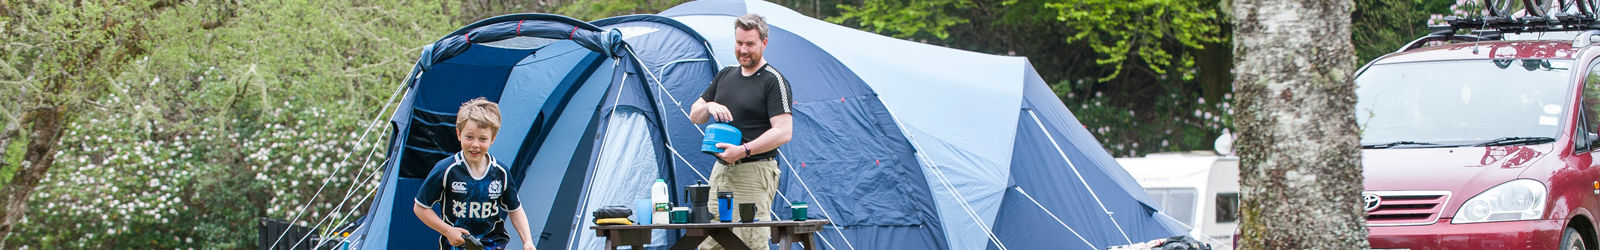 Camping Insurance - What you need to know